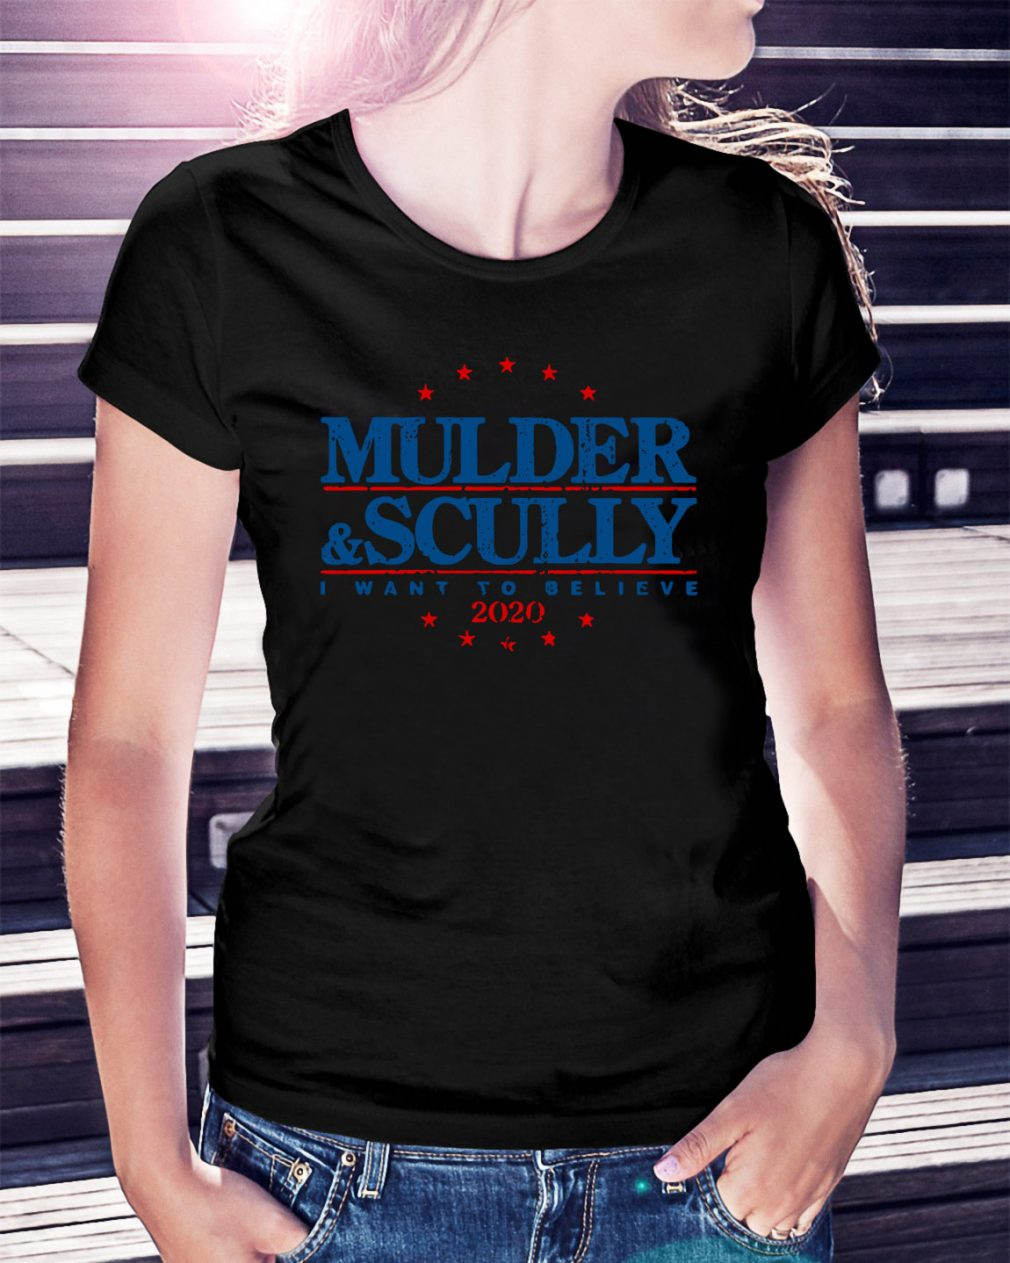 Mulder and Scully I want to believe 2020 Ladies Tee